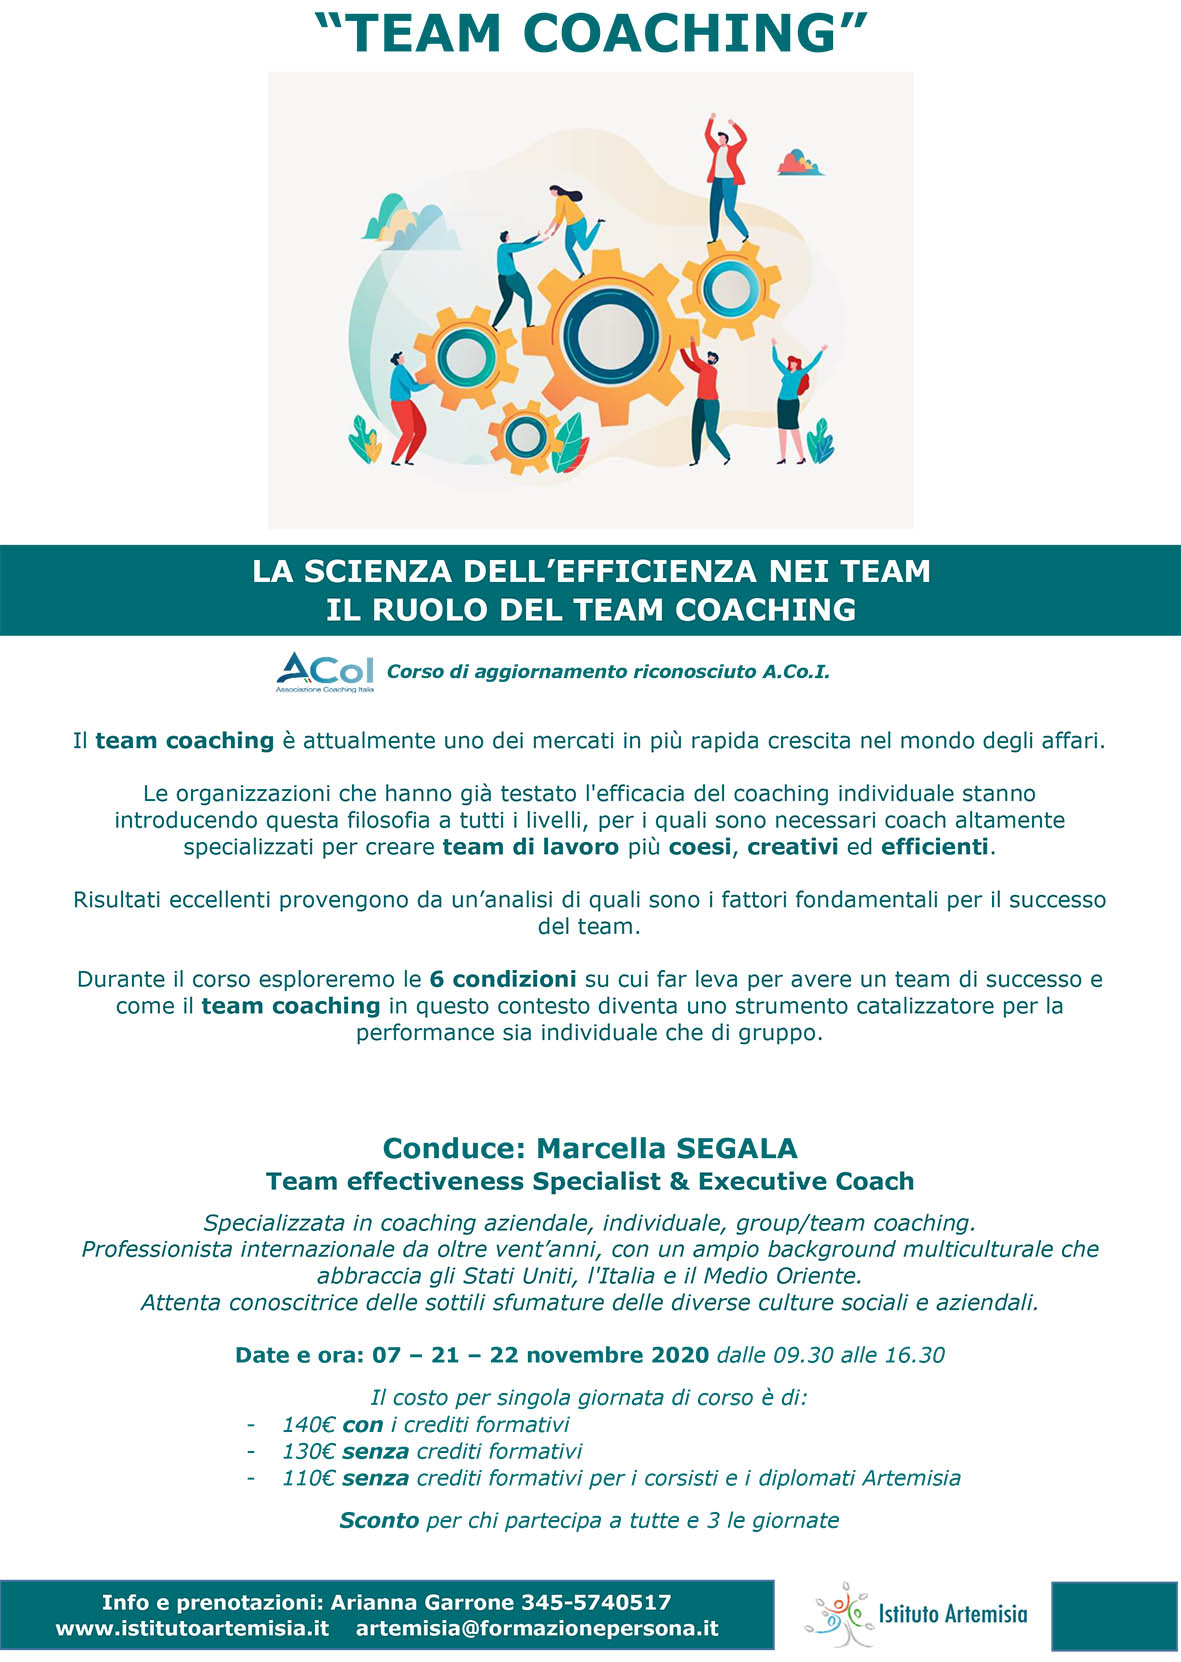 Corso di Team Coaching - la  scienza dell'efficienza nei team, il ruolo del team coaching (terza giornata)